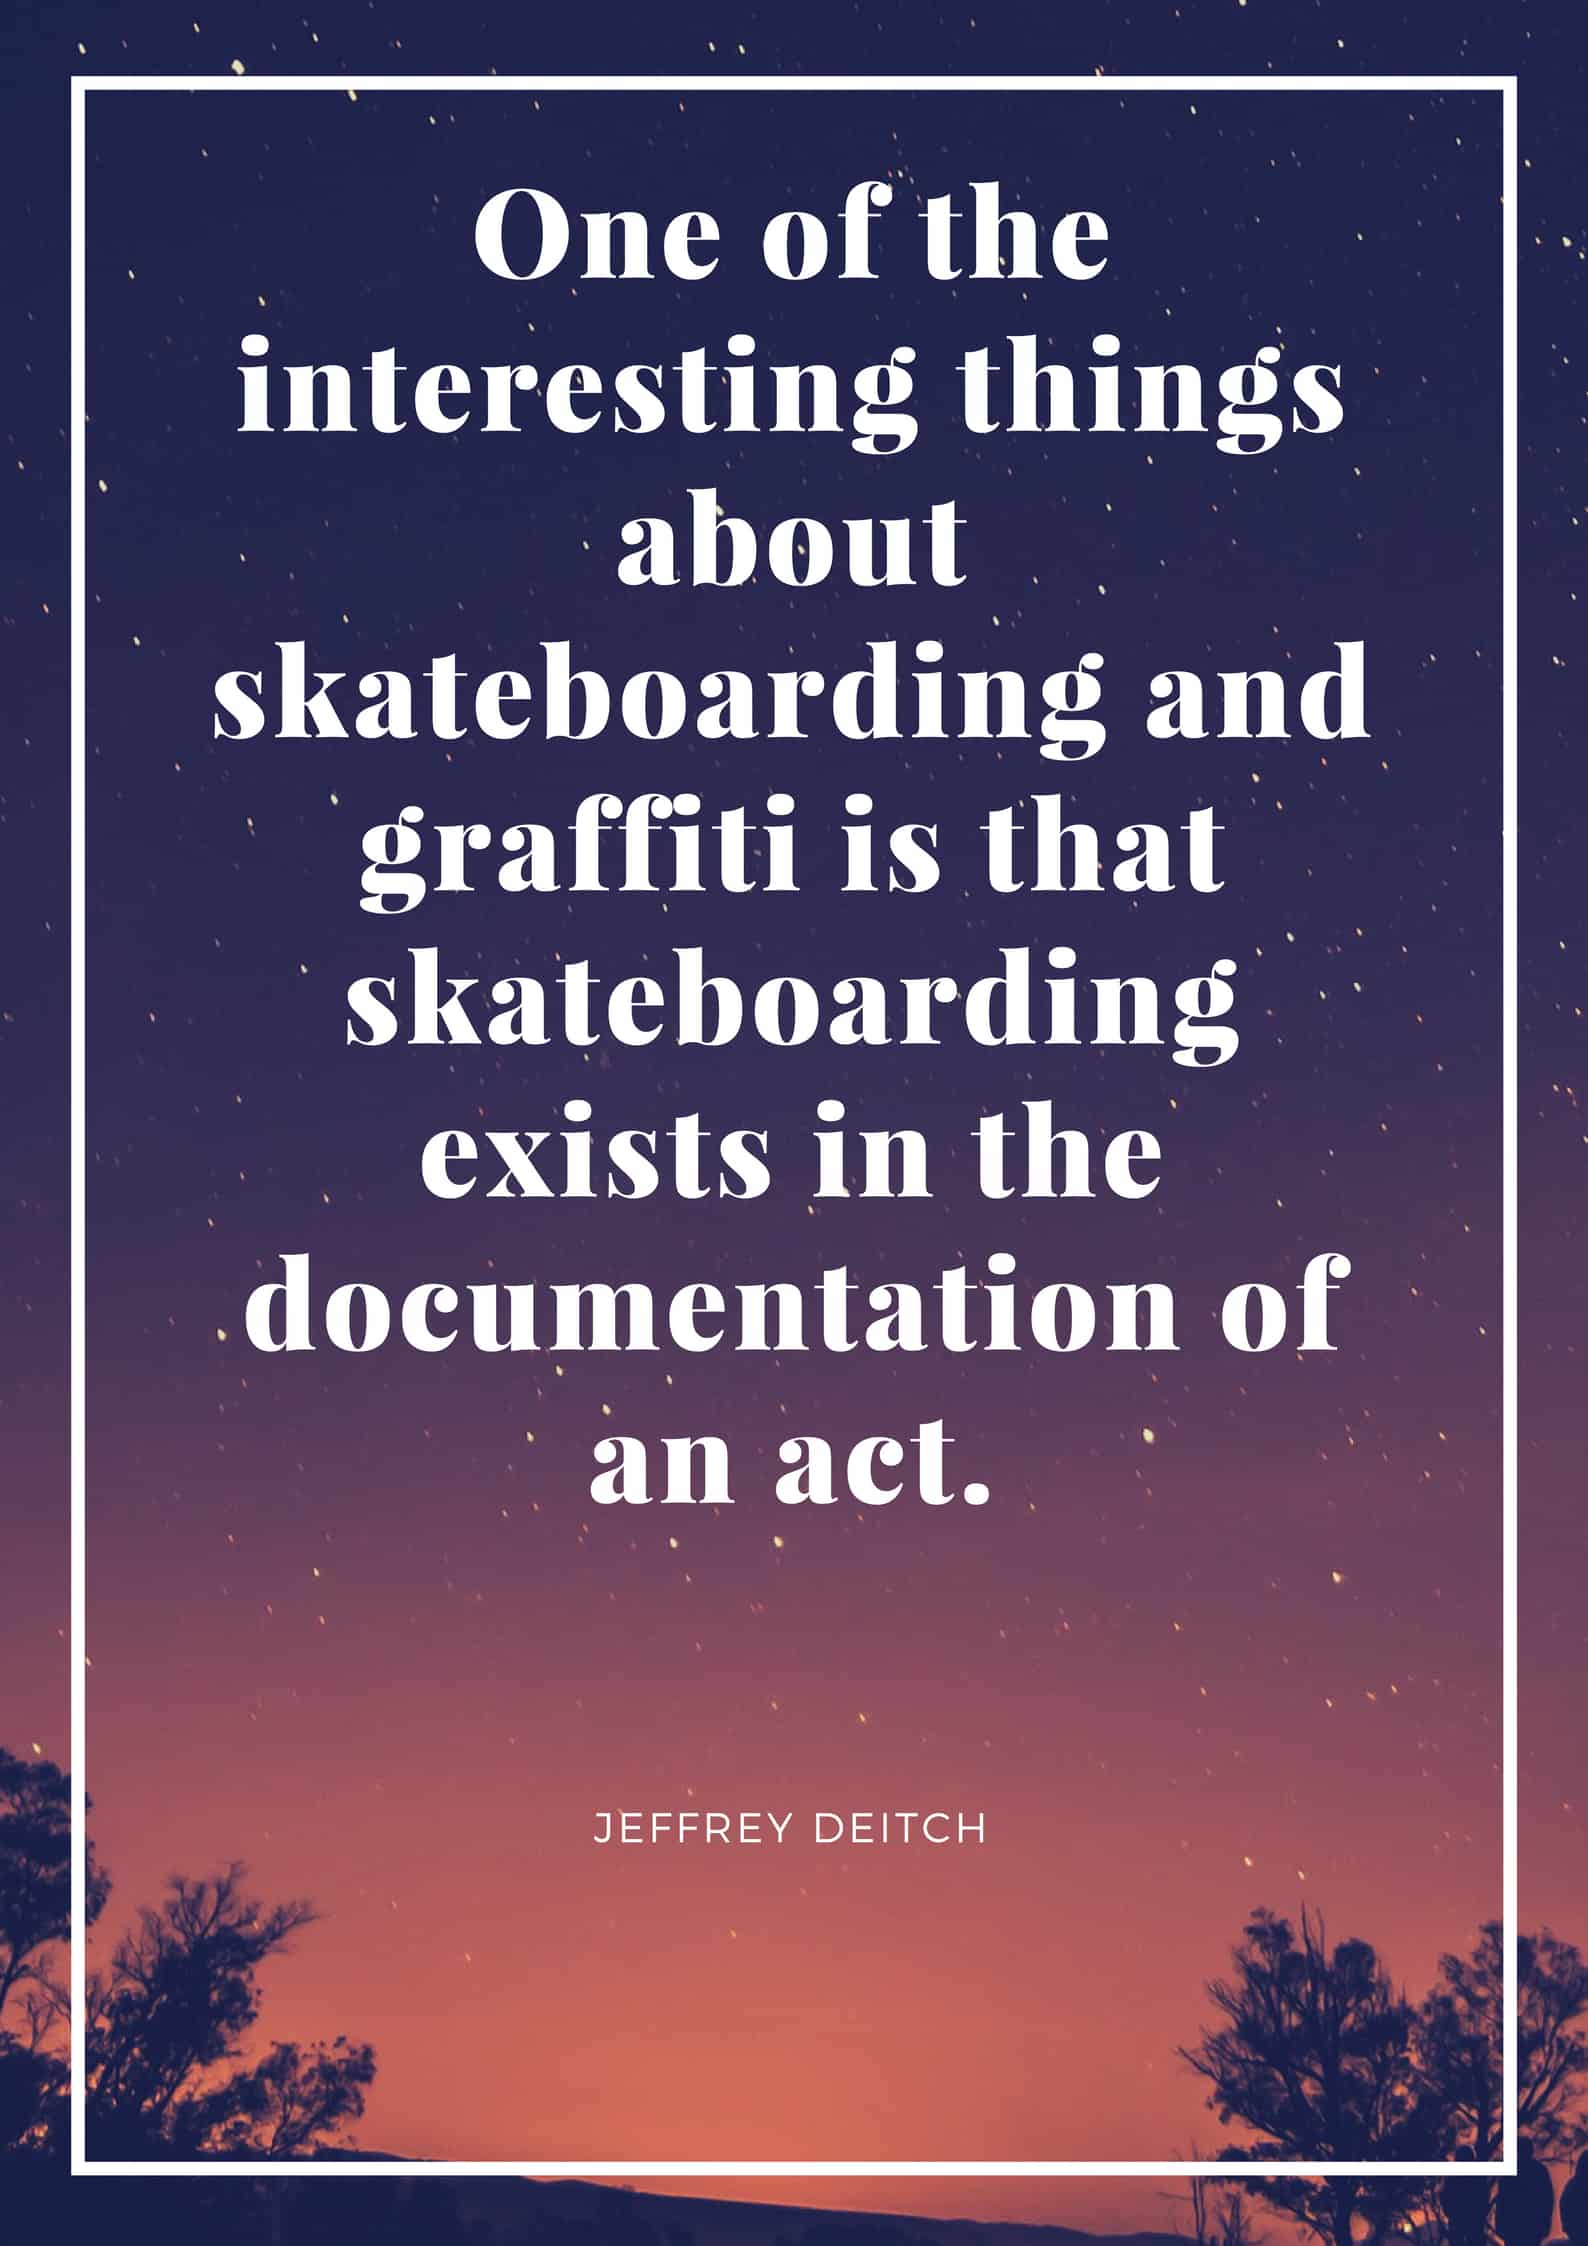 One of the interesting things about skateboarding and graffiti is that skateboarding exists in the documentation of an act.